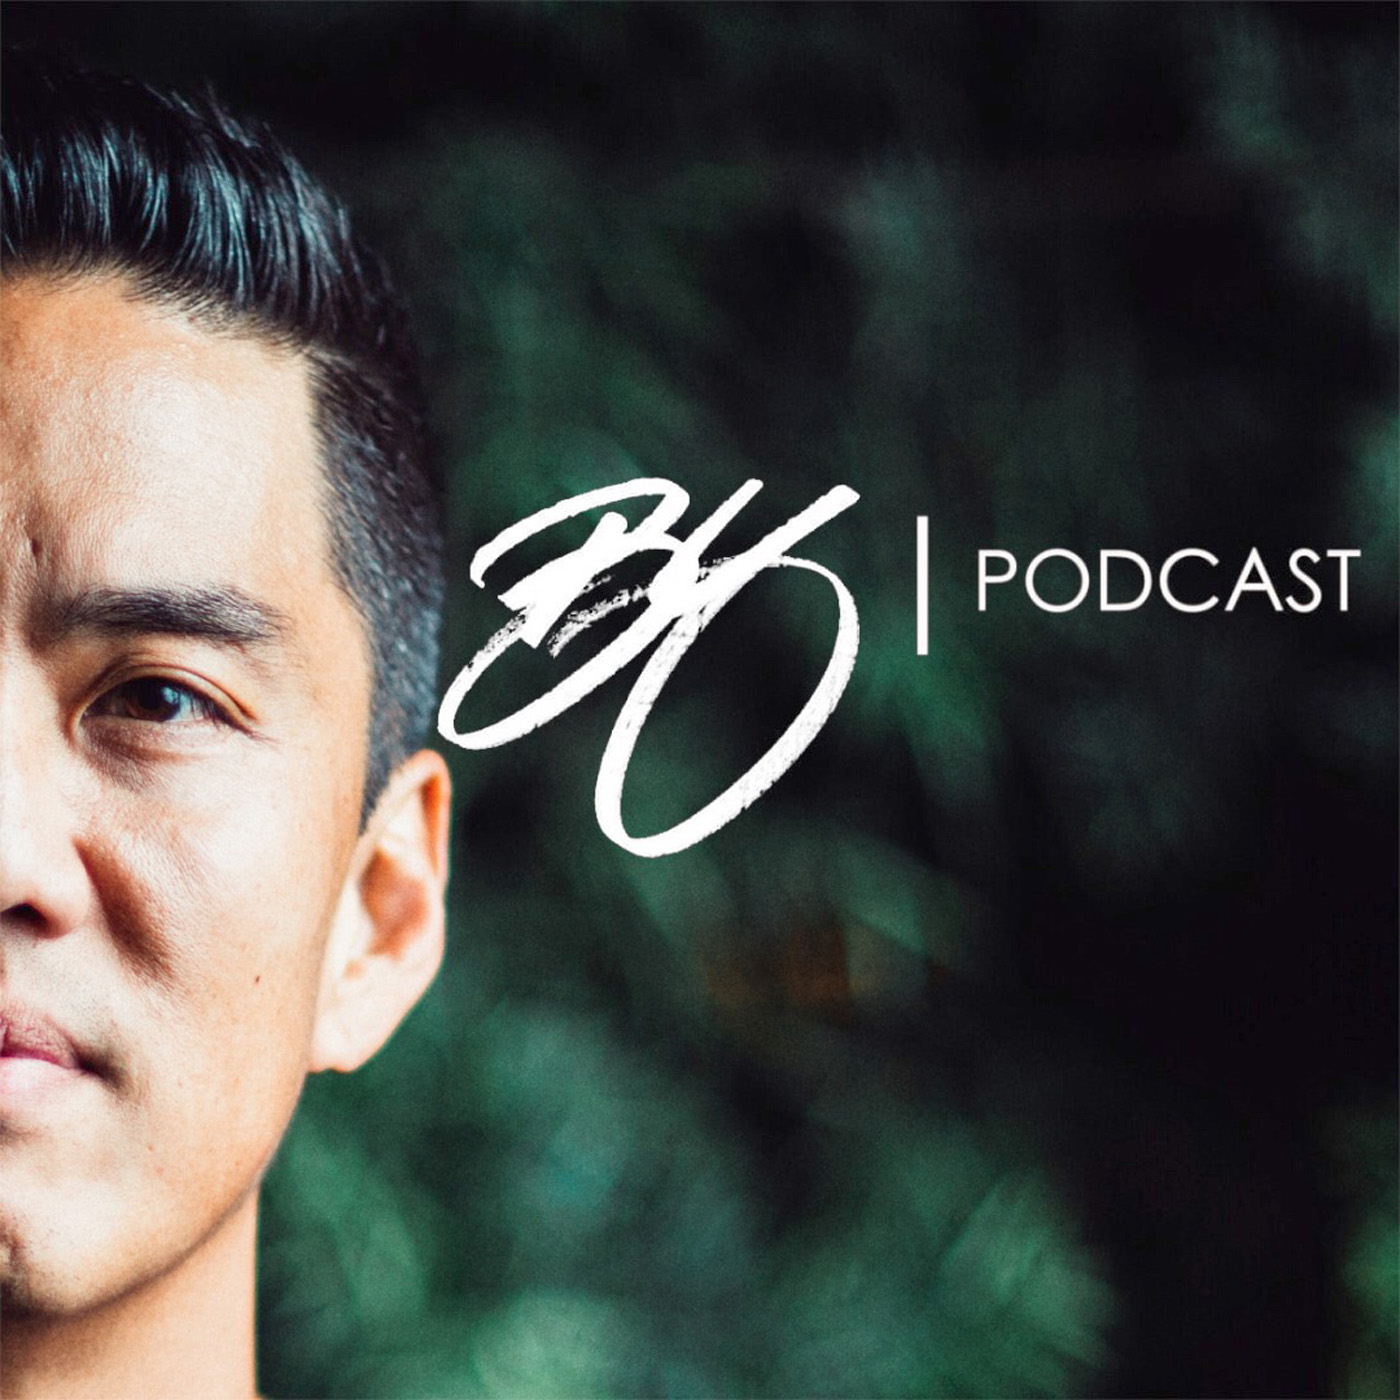 Billy Yang Podcast show art